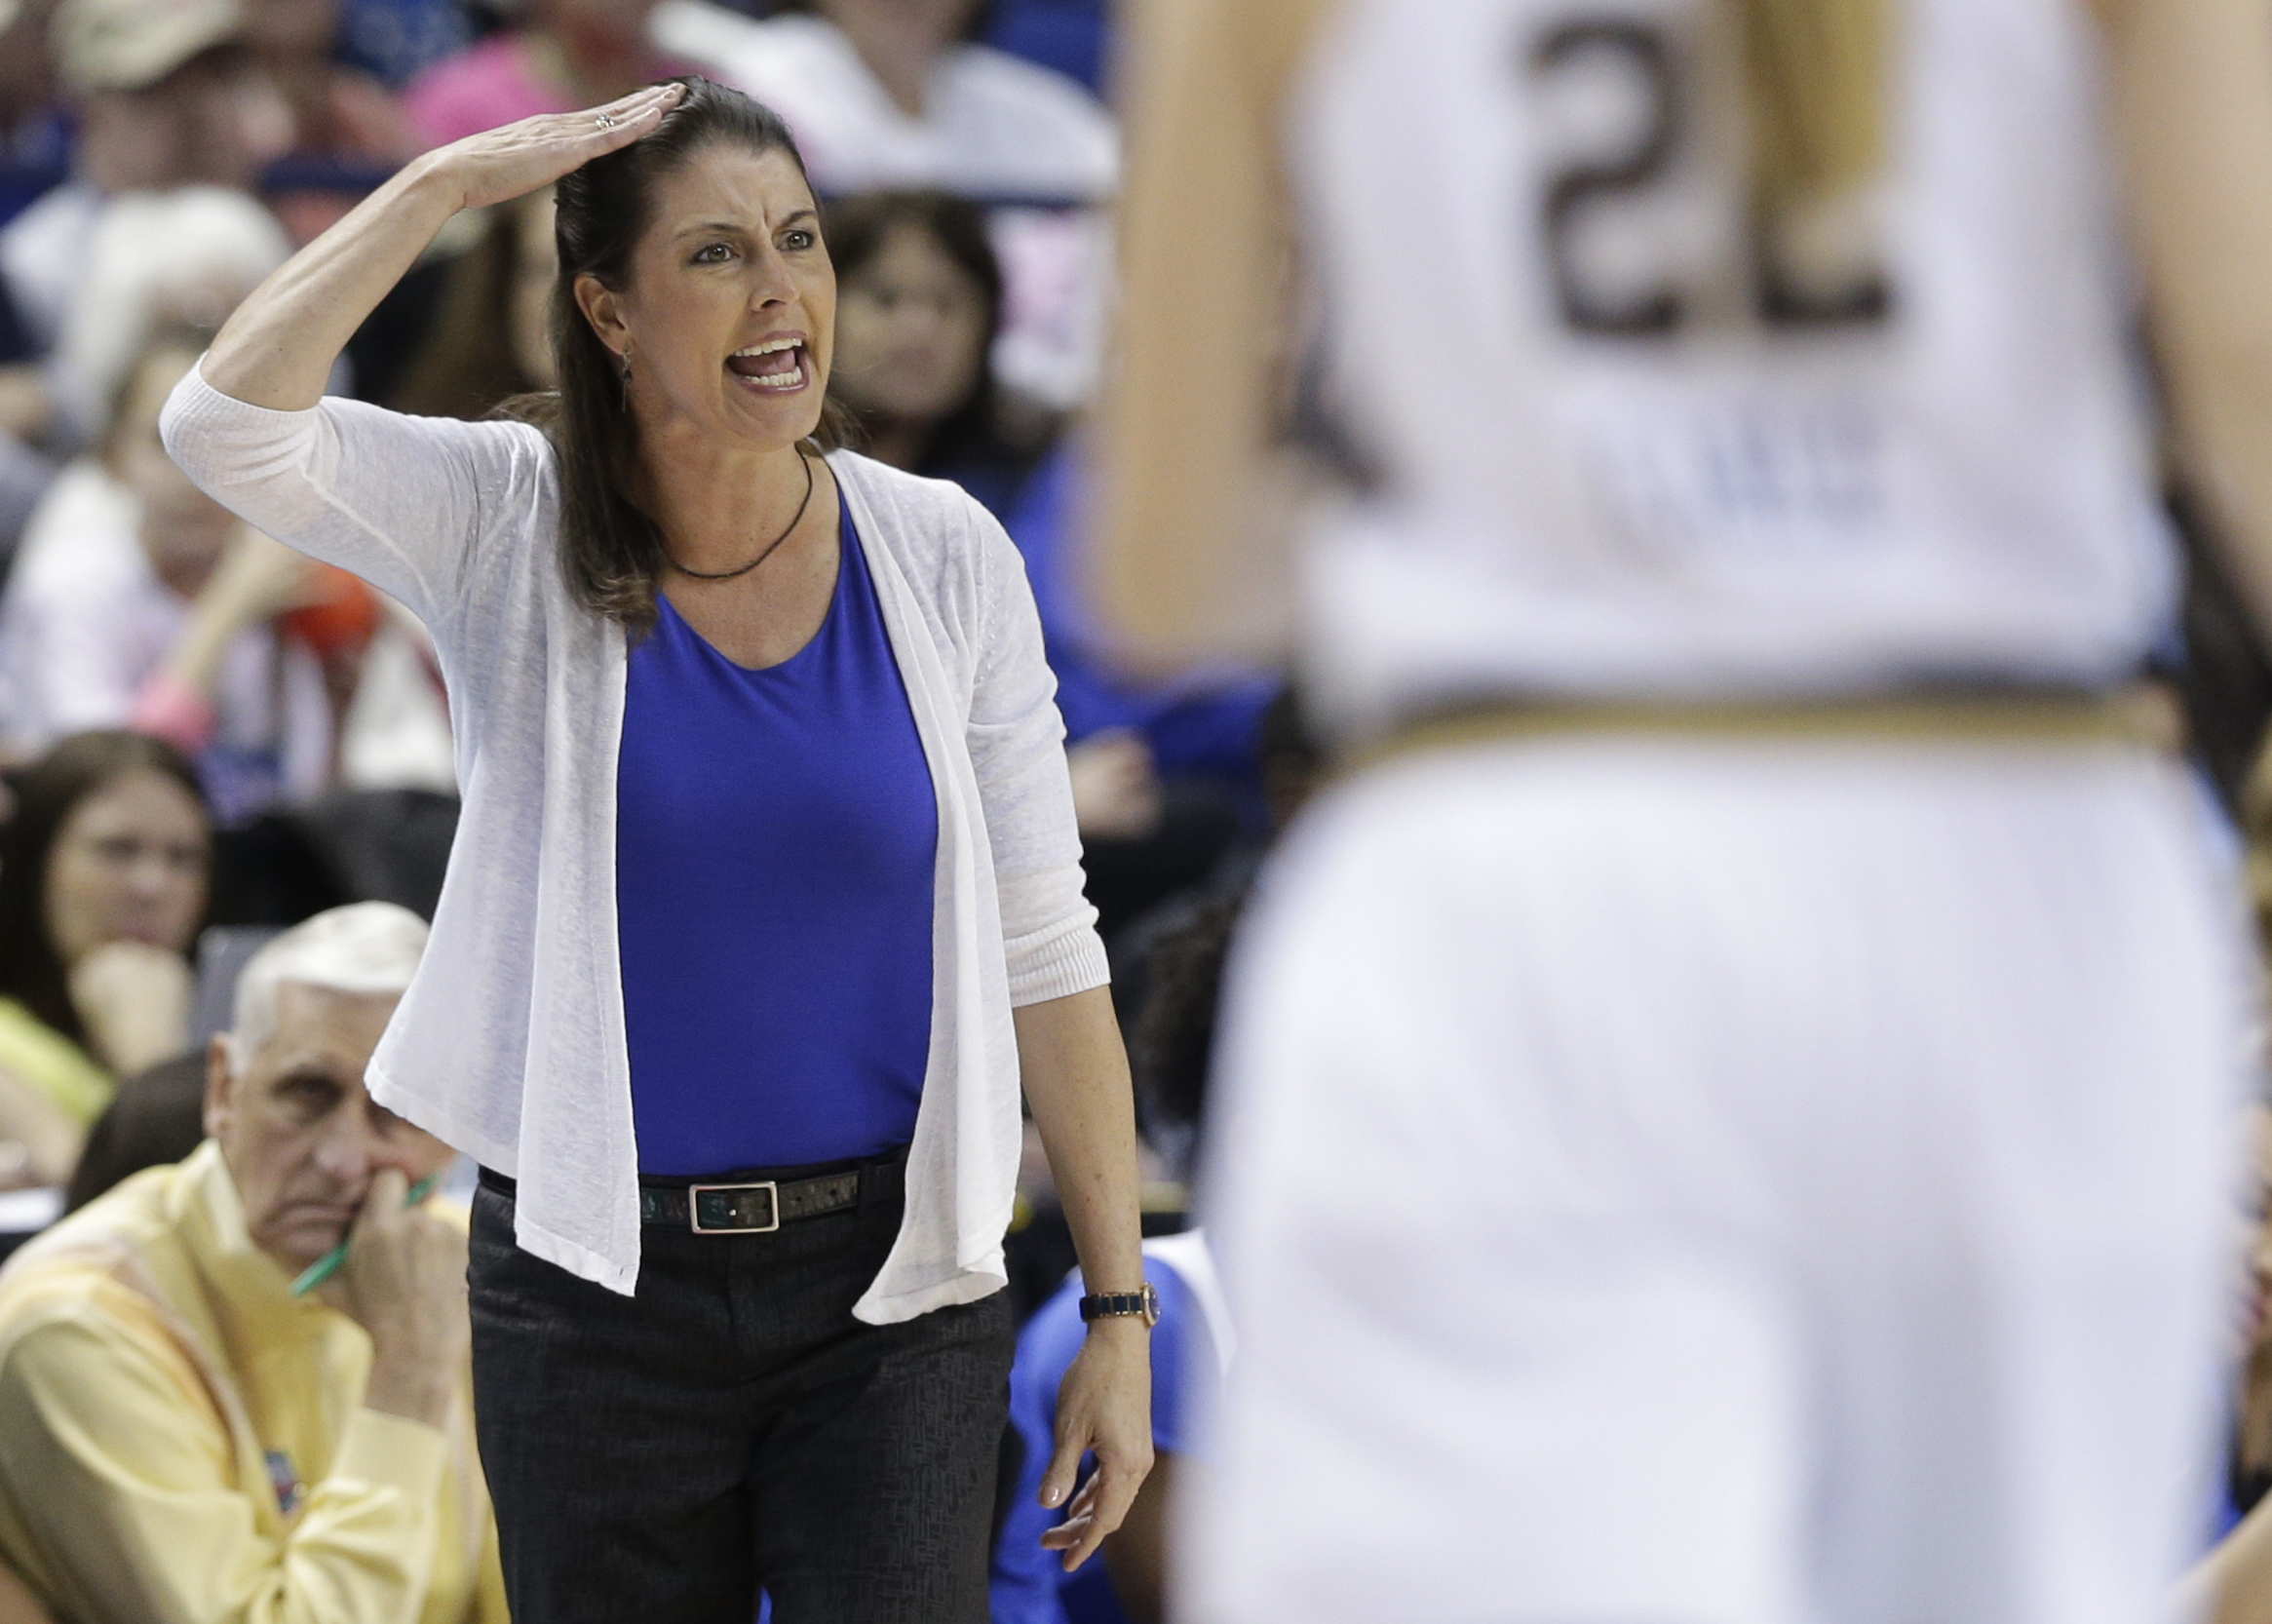 Duke head coach Joanne P. McCallie directs her team against Notre Dame during the first half of an NCAA college basketball game in the Atlantic Coast Conference tournament in Greensboro, N.C., Friday, March 4, 2016. (AP Photo/Chuck Burton)